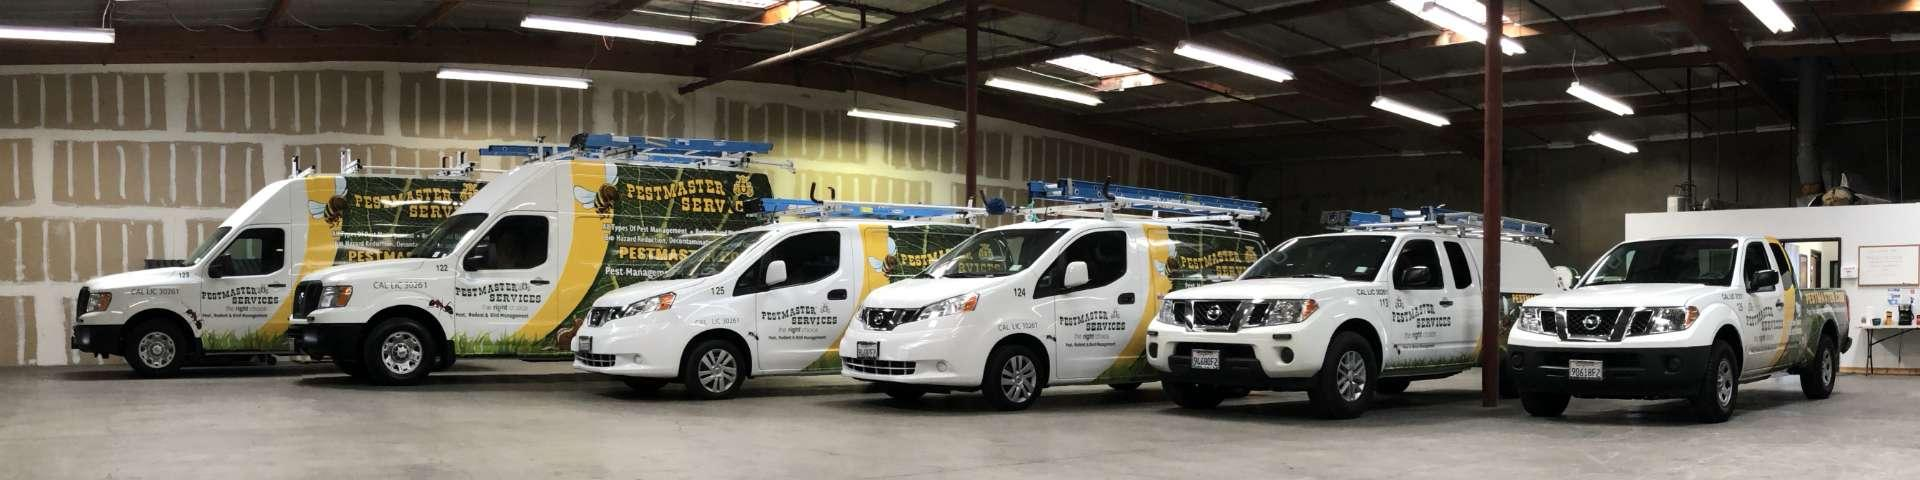 a fleet of pestmaster services vehicles